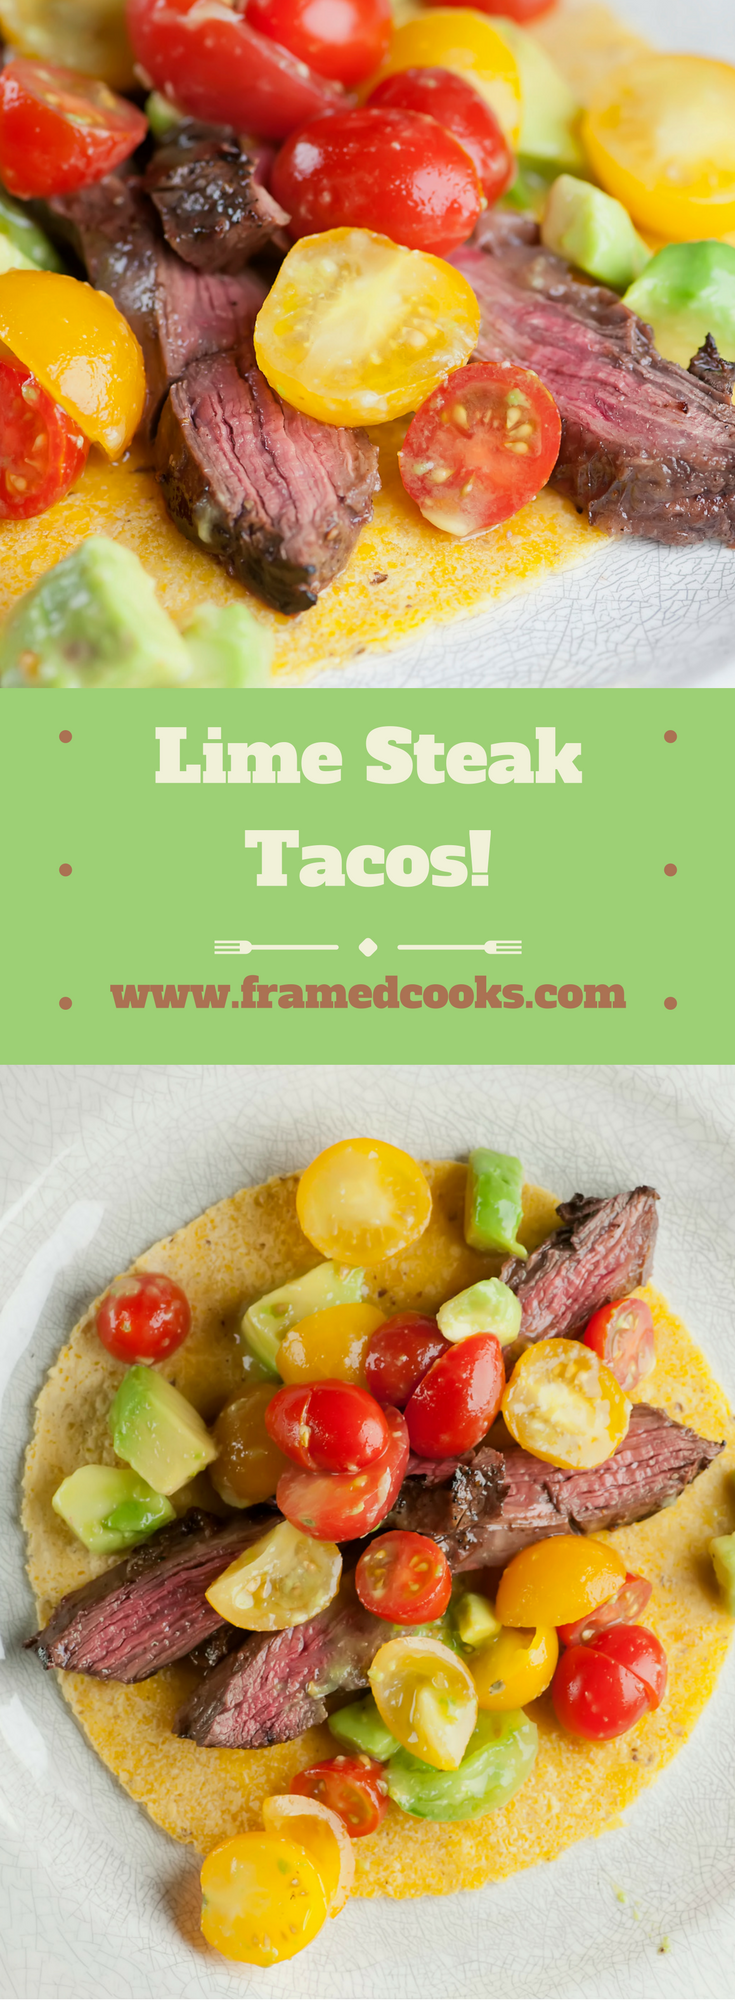 This recipe for lime steak tacos gives your supper a great citrus taste! Avocado and cherry tomatoes round out the meal for a colorful lunch or dinner.